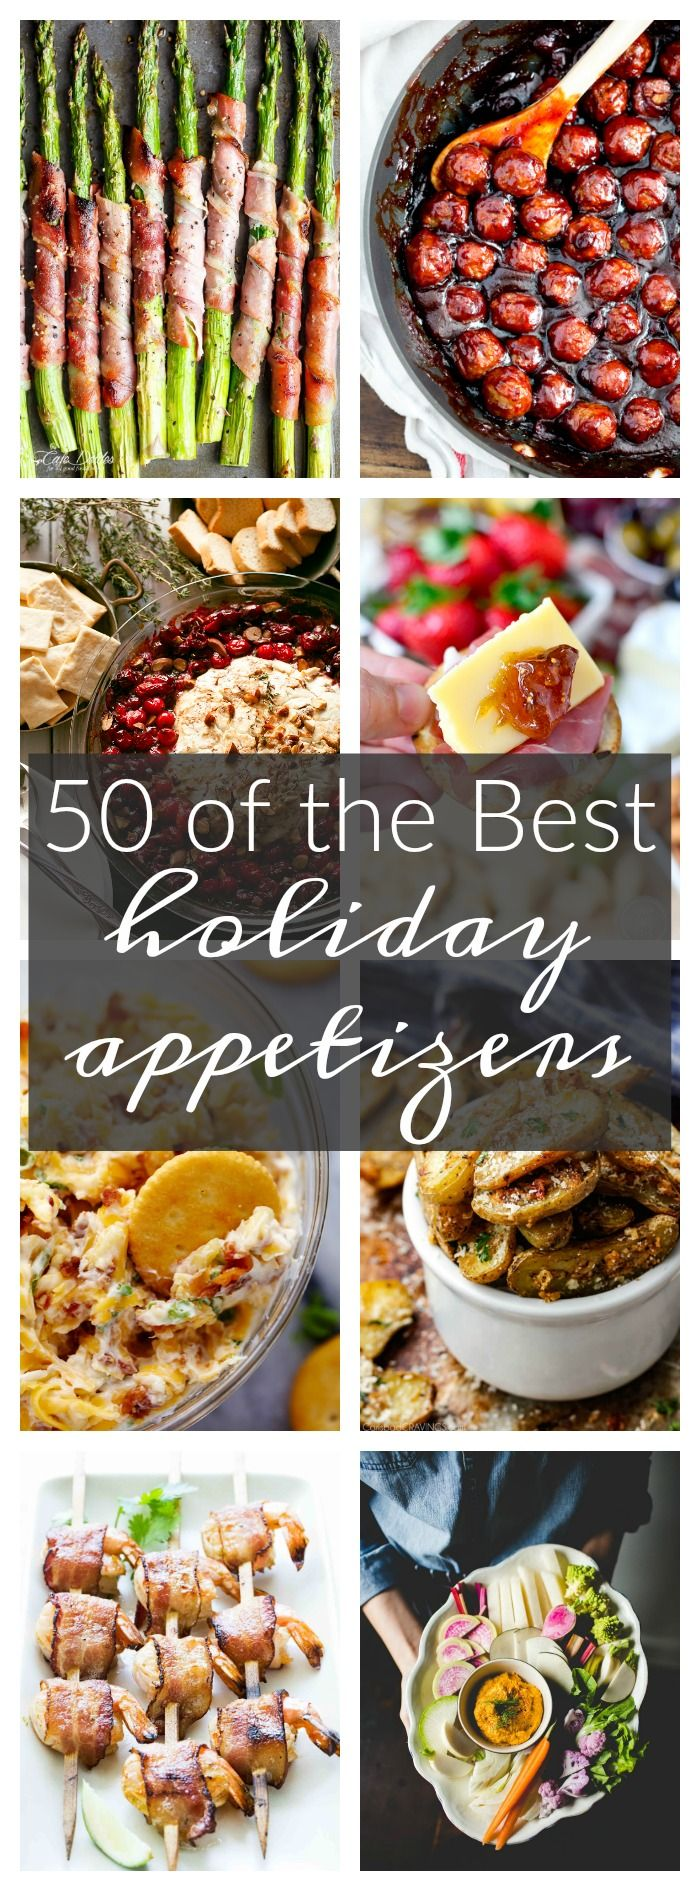 50 of the best appetizers for the holidays appetizer recipes pinterest appetizers holiday appetizers and christmas appetizers